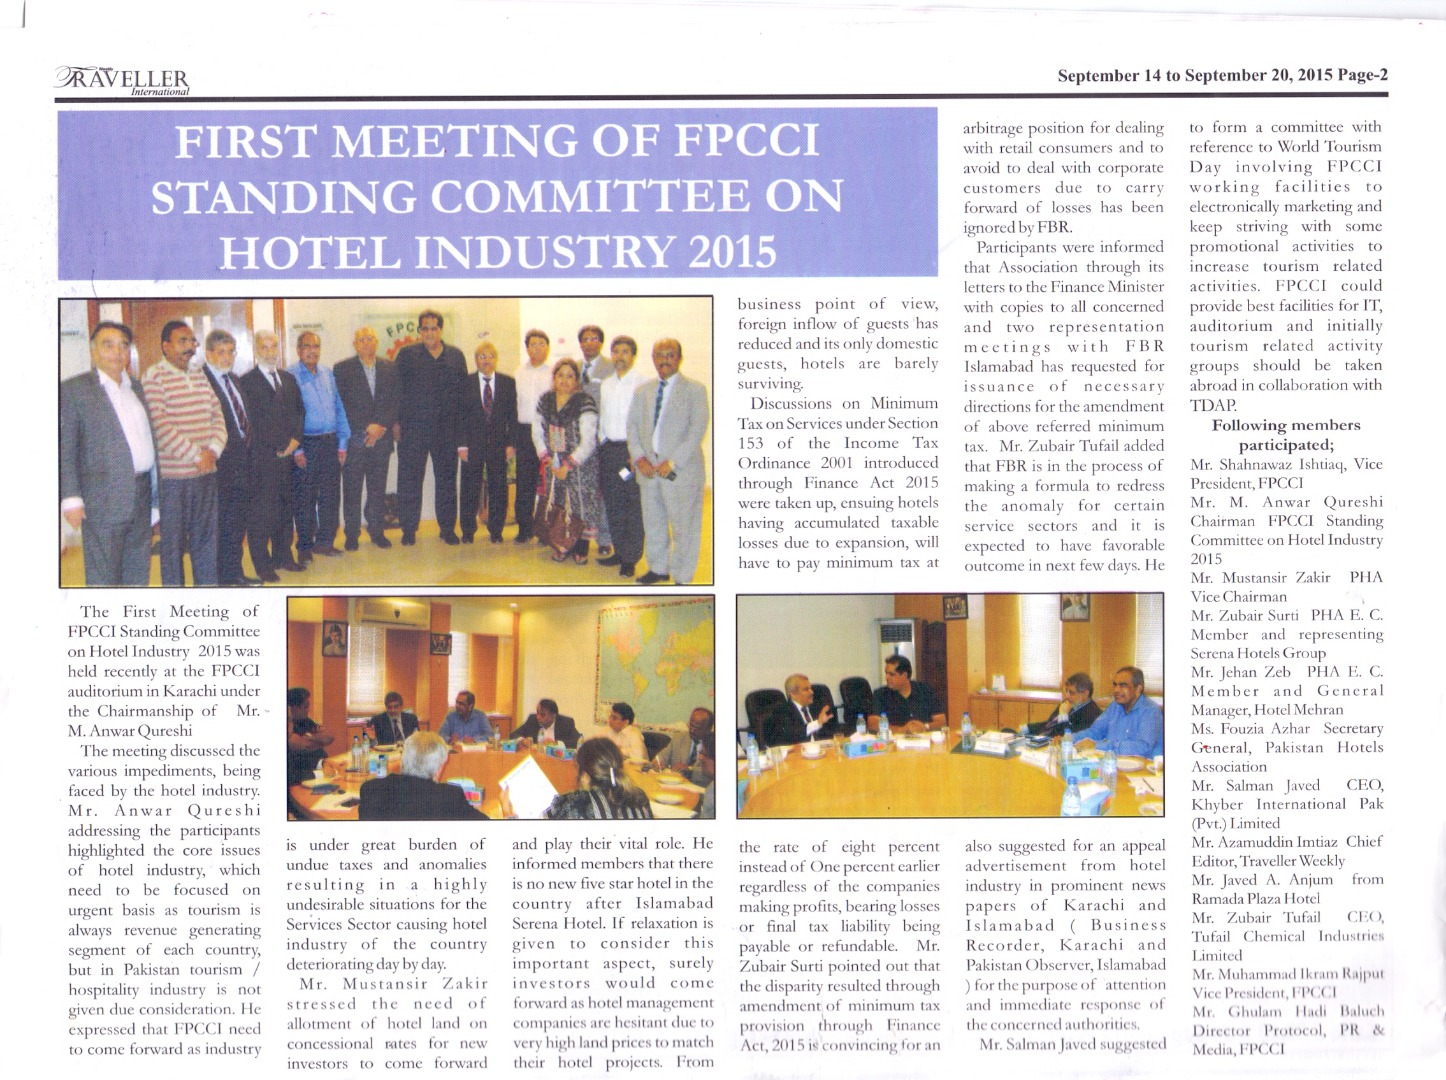 PHA held FPCCI Standing Committee on Hotel Industry Meeting on 3rd September, 2015 at FPCCI, Karachi